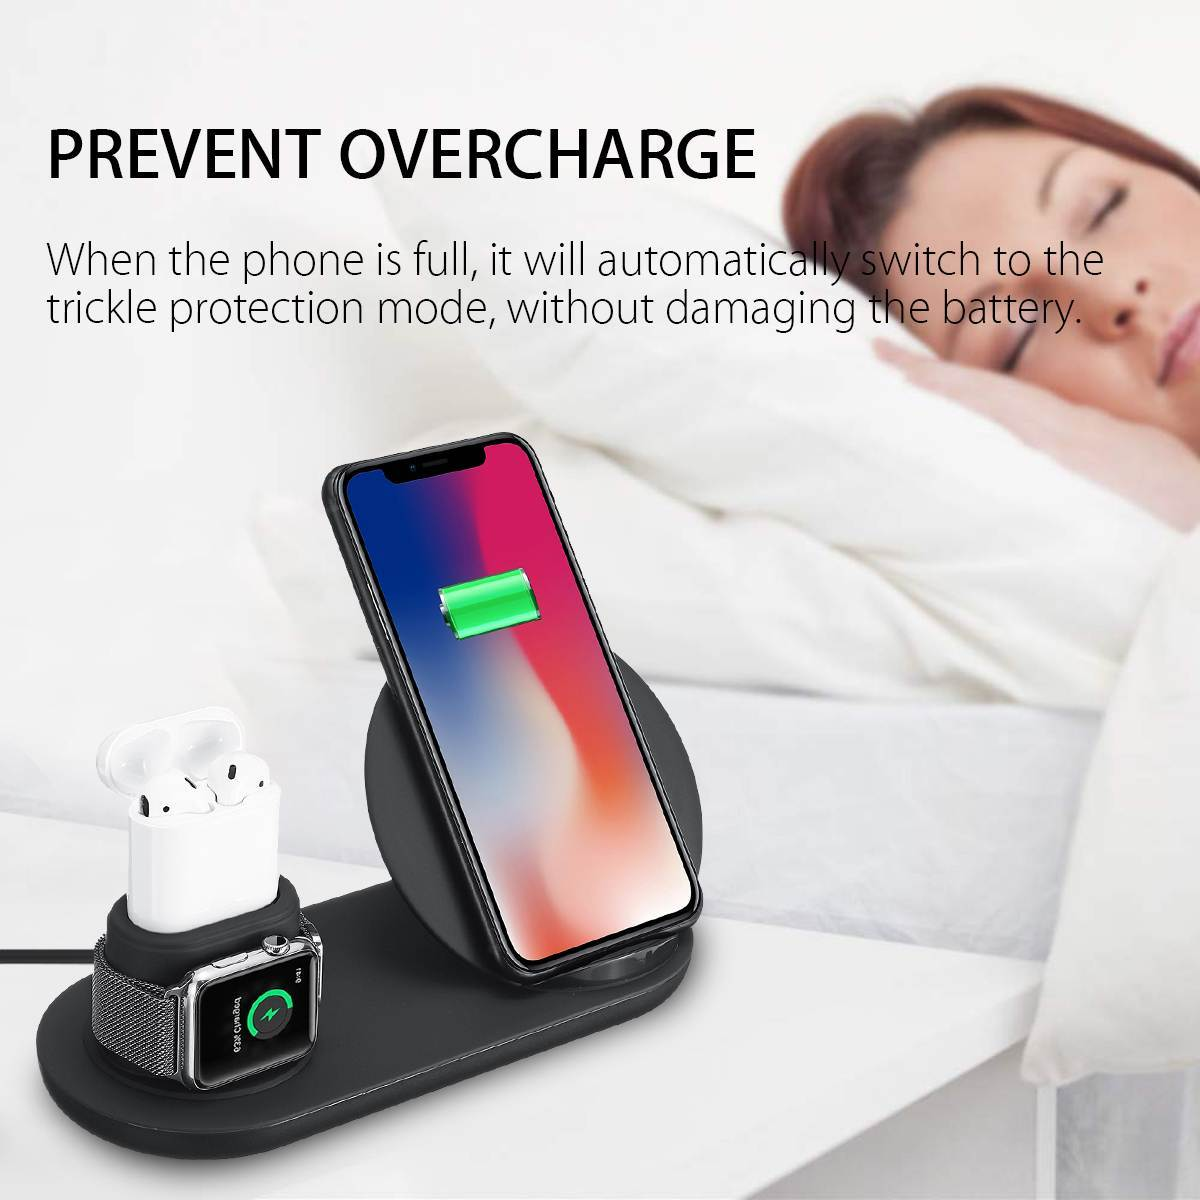 Apple airpod watch and phone station, Charging station for apple